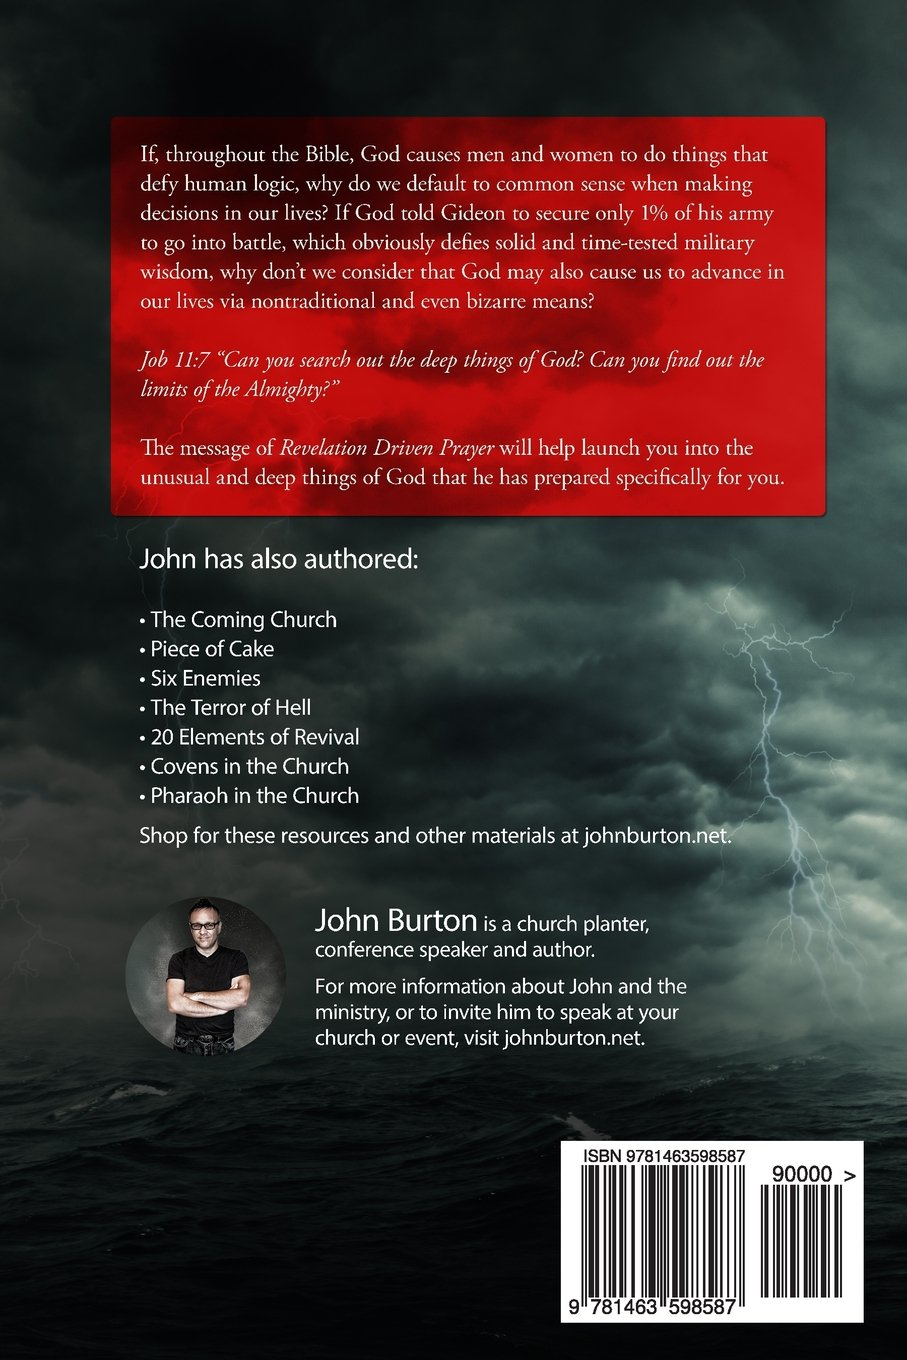 Revelation Driven Prayer: Discover the Shock and Awe of Gods Voice